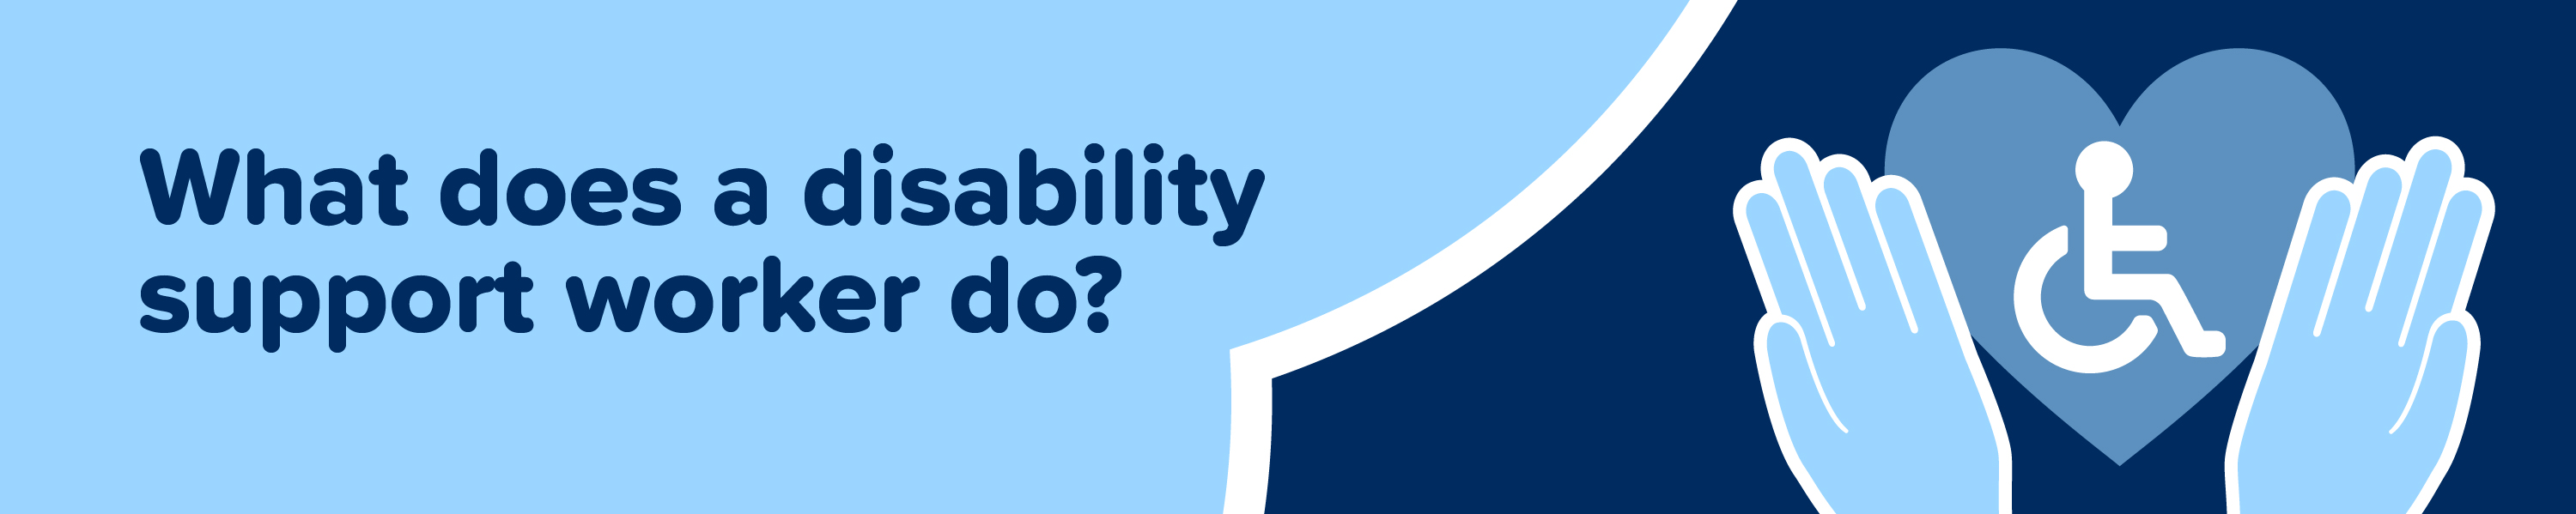 What does a disability support worker do? Disability Support Worker job description.